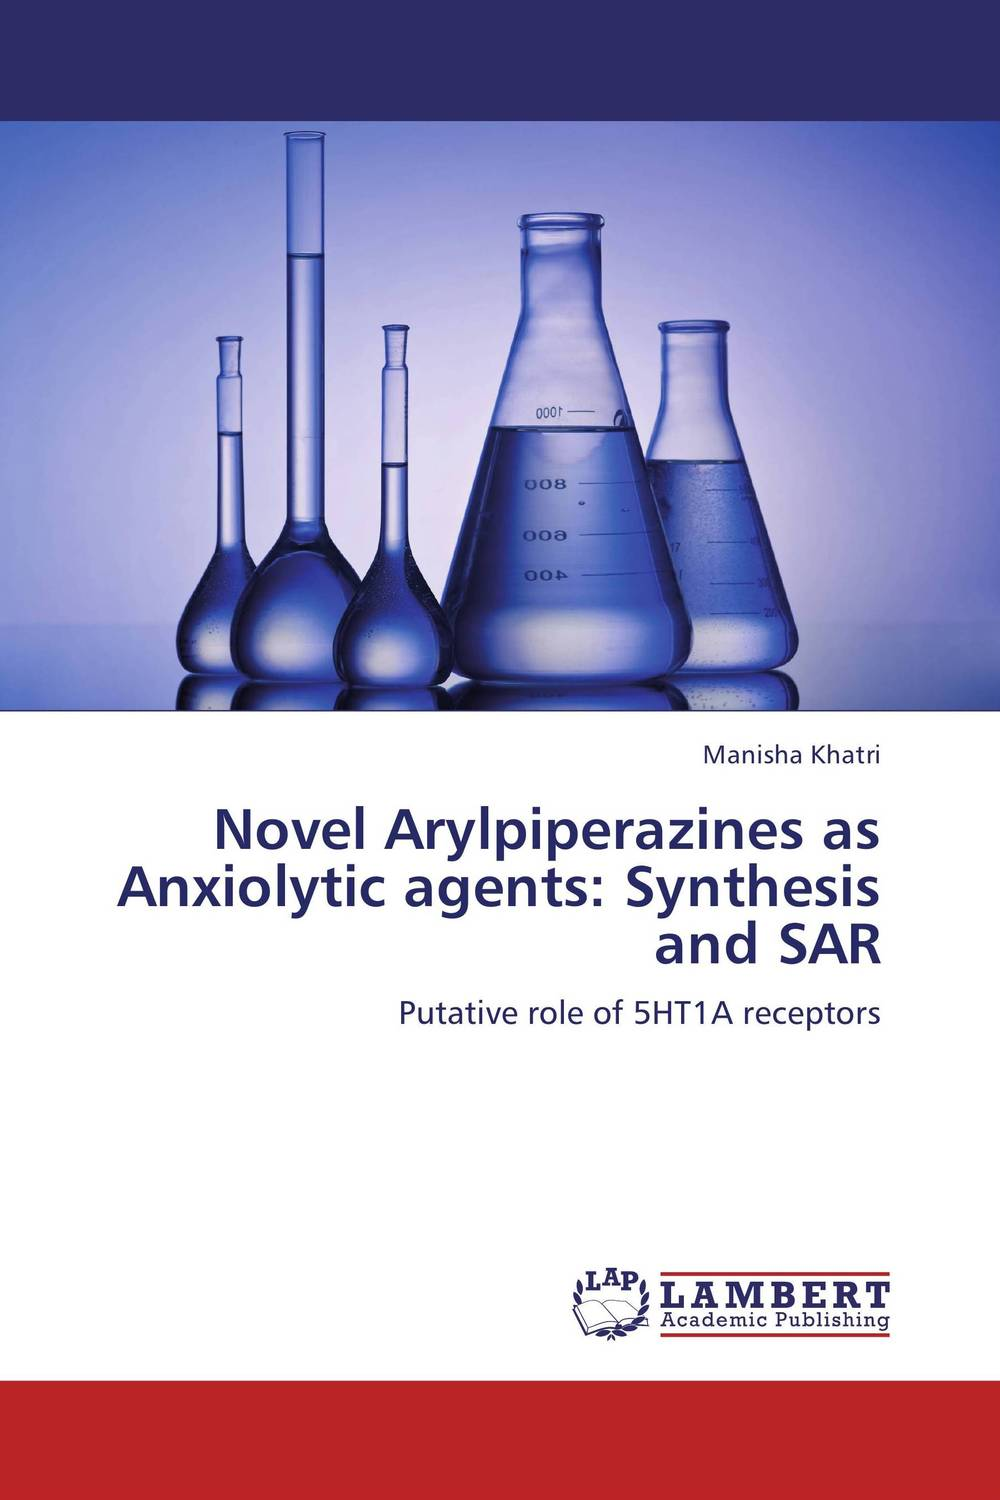 Novel Arylpiperazines as Anxiolytic agents: Synthesis and SAR stefan hofmann g psychobiological approaches for anxiety disorders treatment combination strategies